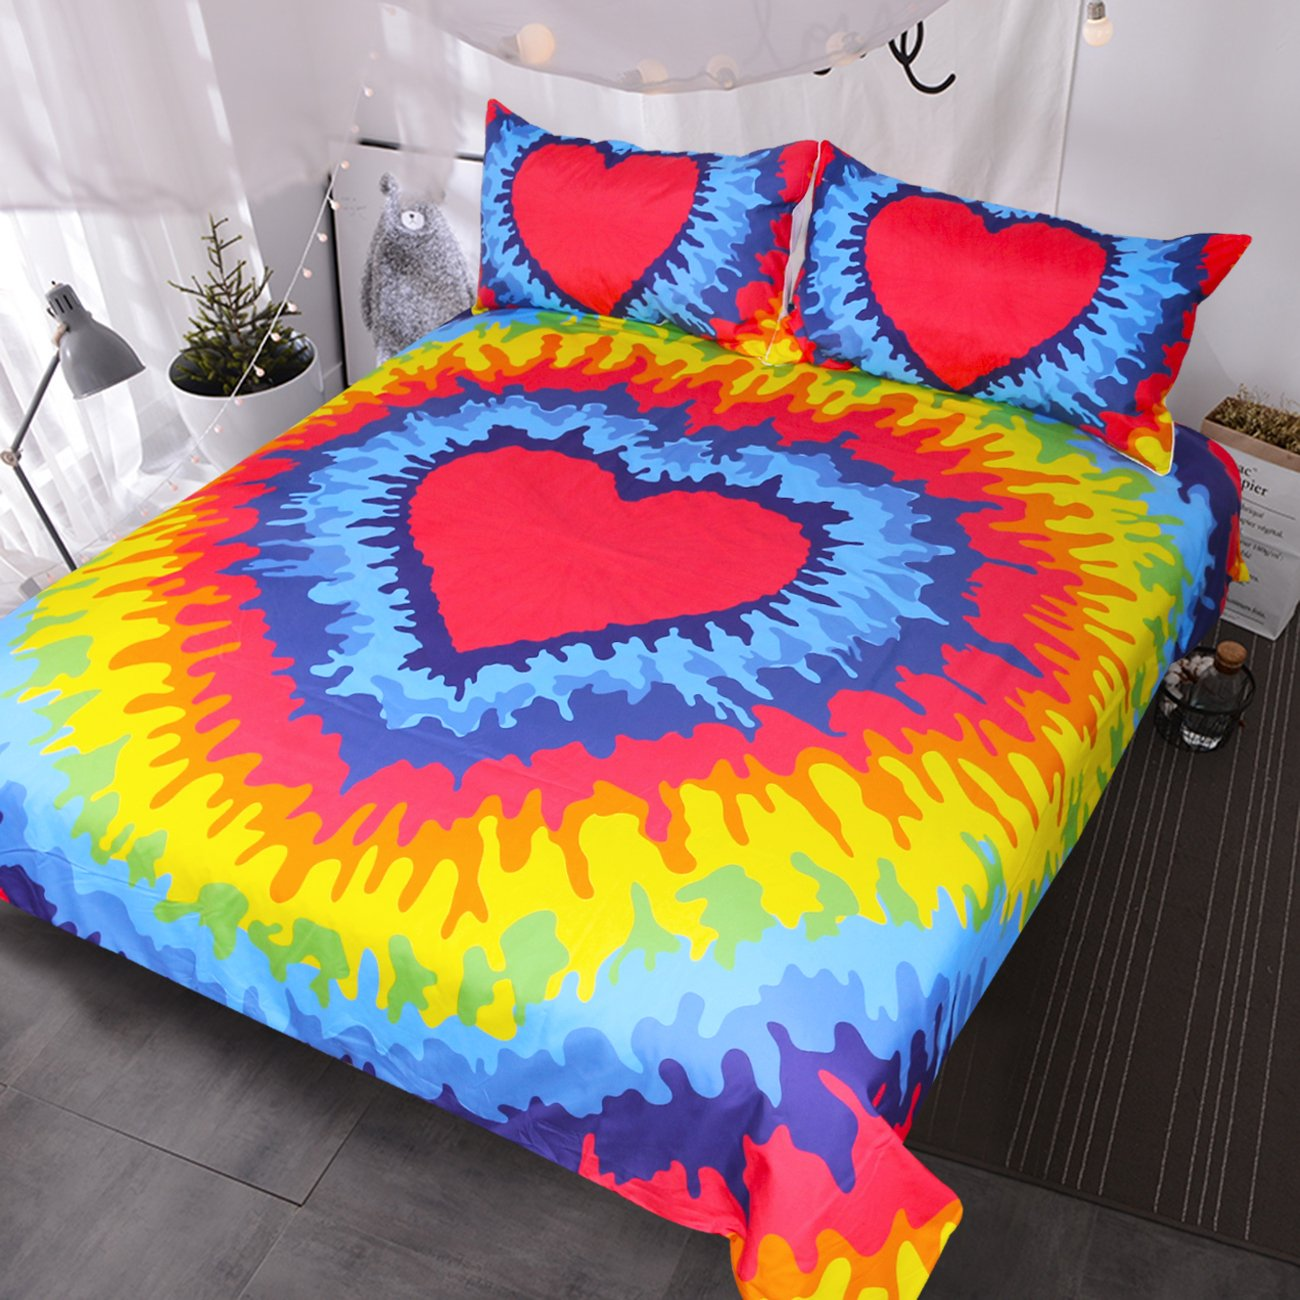 Blessliving Rainbow Tie Dye Bedding Red Heart Duvet Cover Psychedelic Bed Set for Bohemian Hippie Lover (Queen)